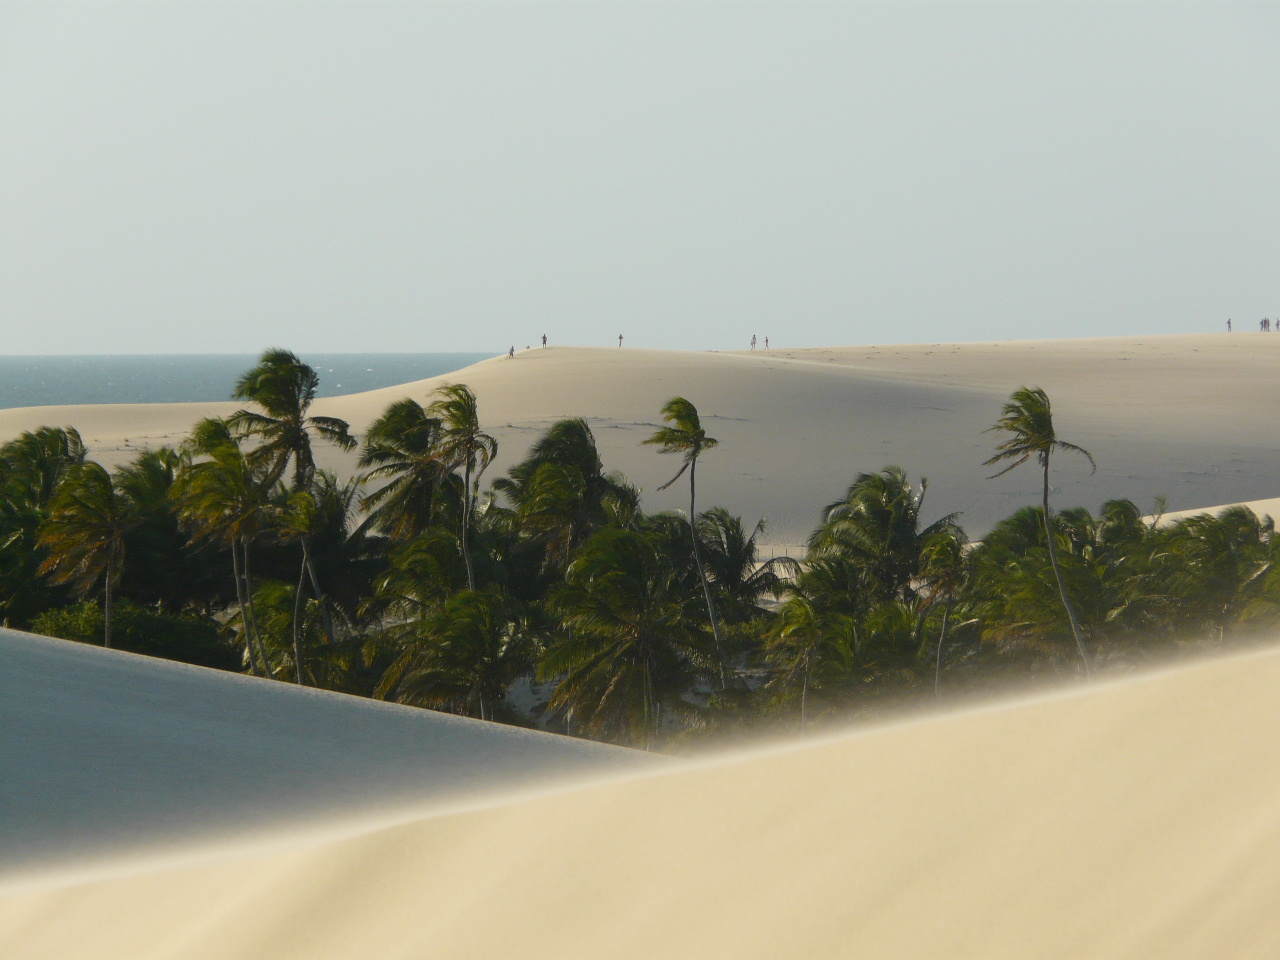 A windy day up in the dunes in Jericoacoara.